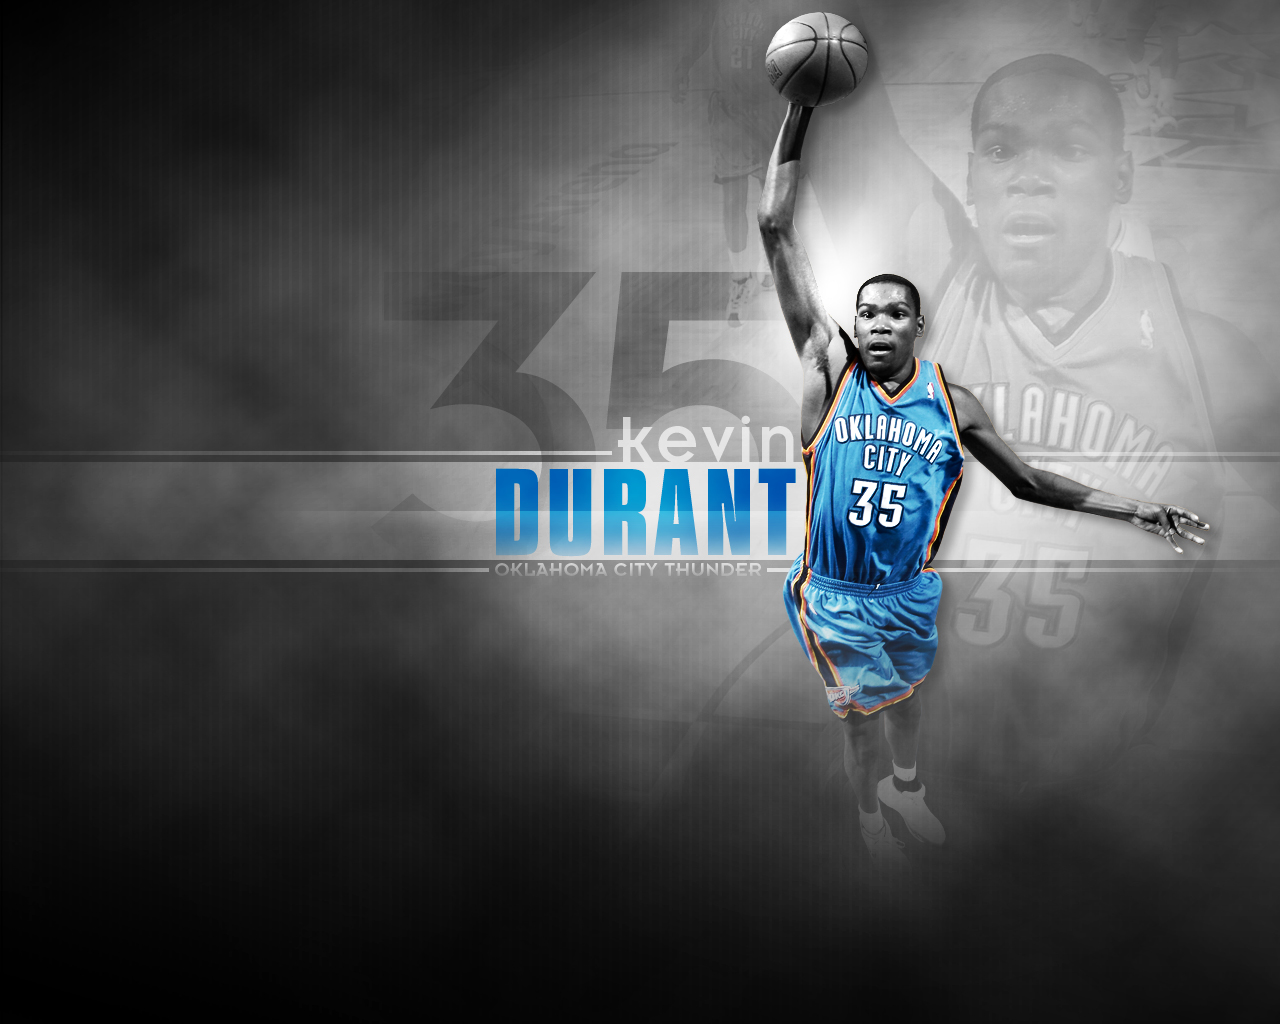 Kevin Durant - Player Page